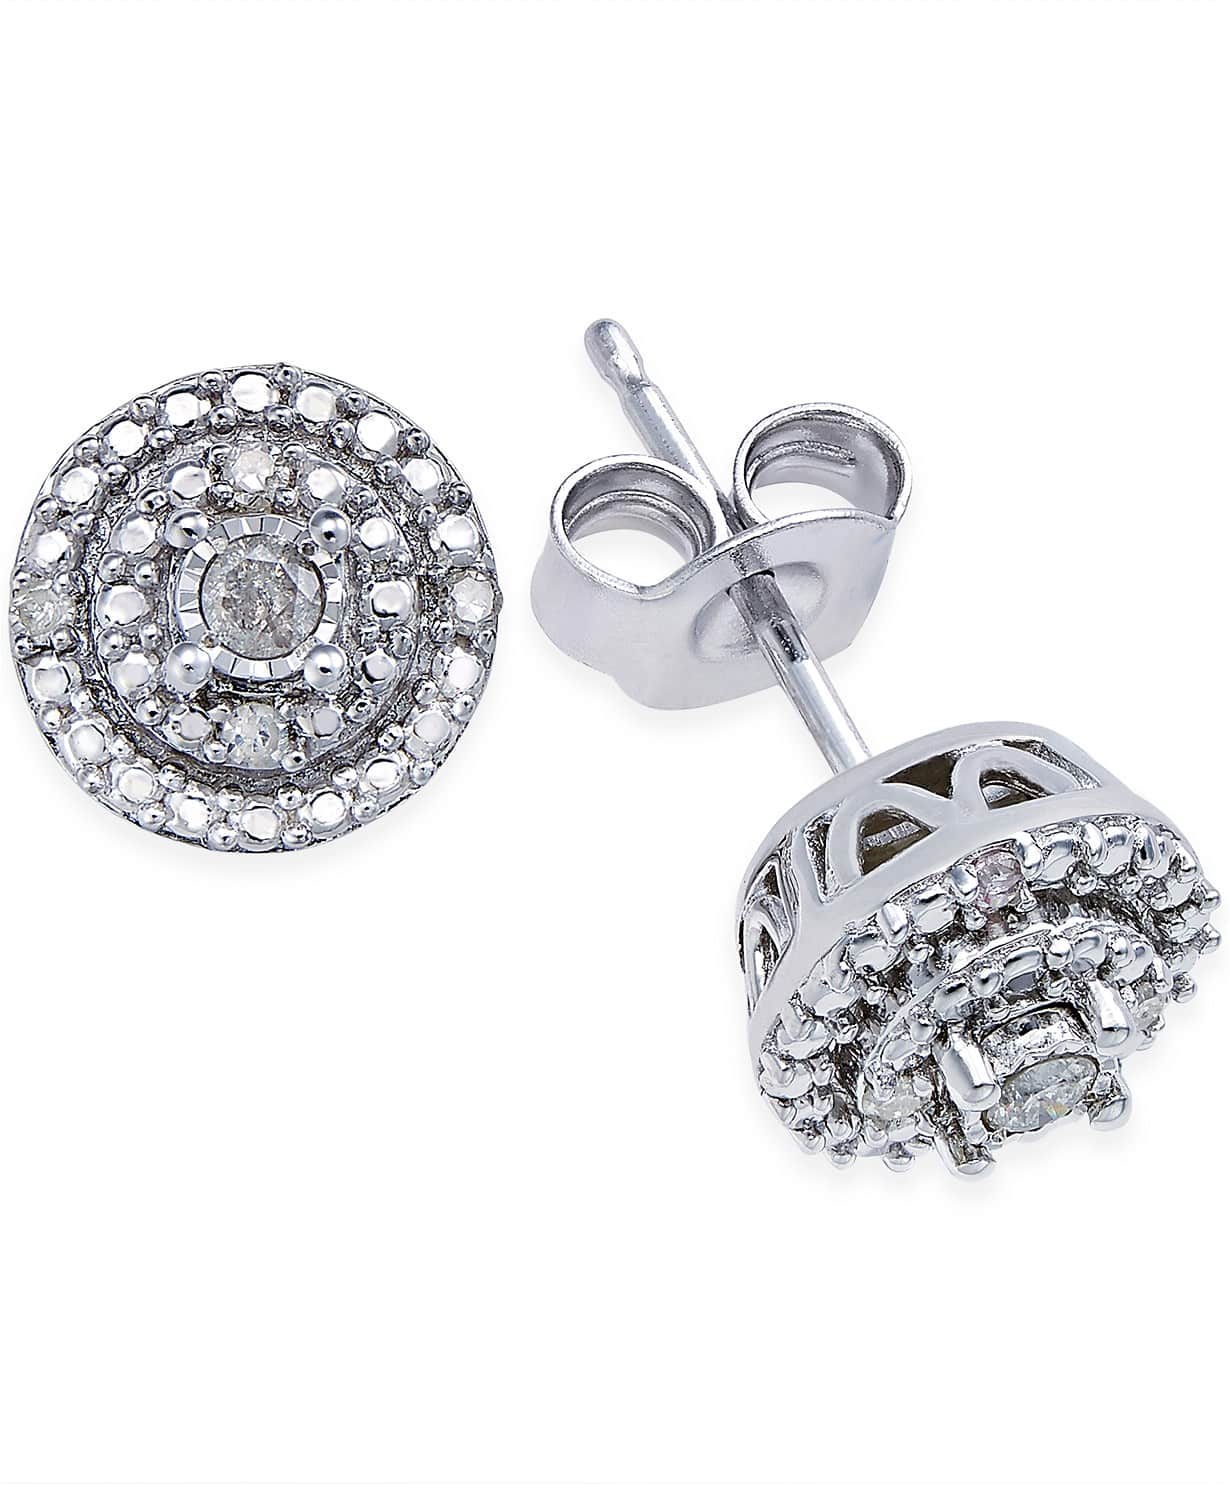 1/10 ct. t.w. Diamond Stud Earrings $200 value for $24.00 $24.99